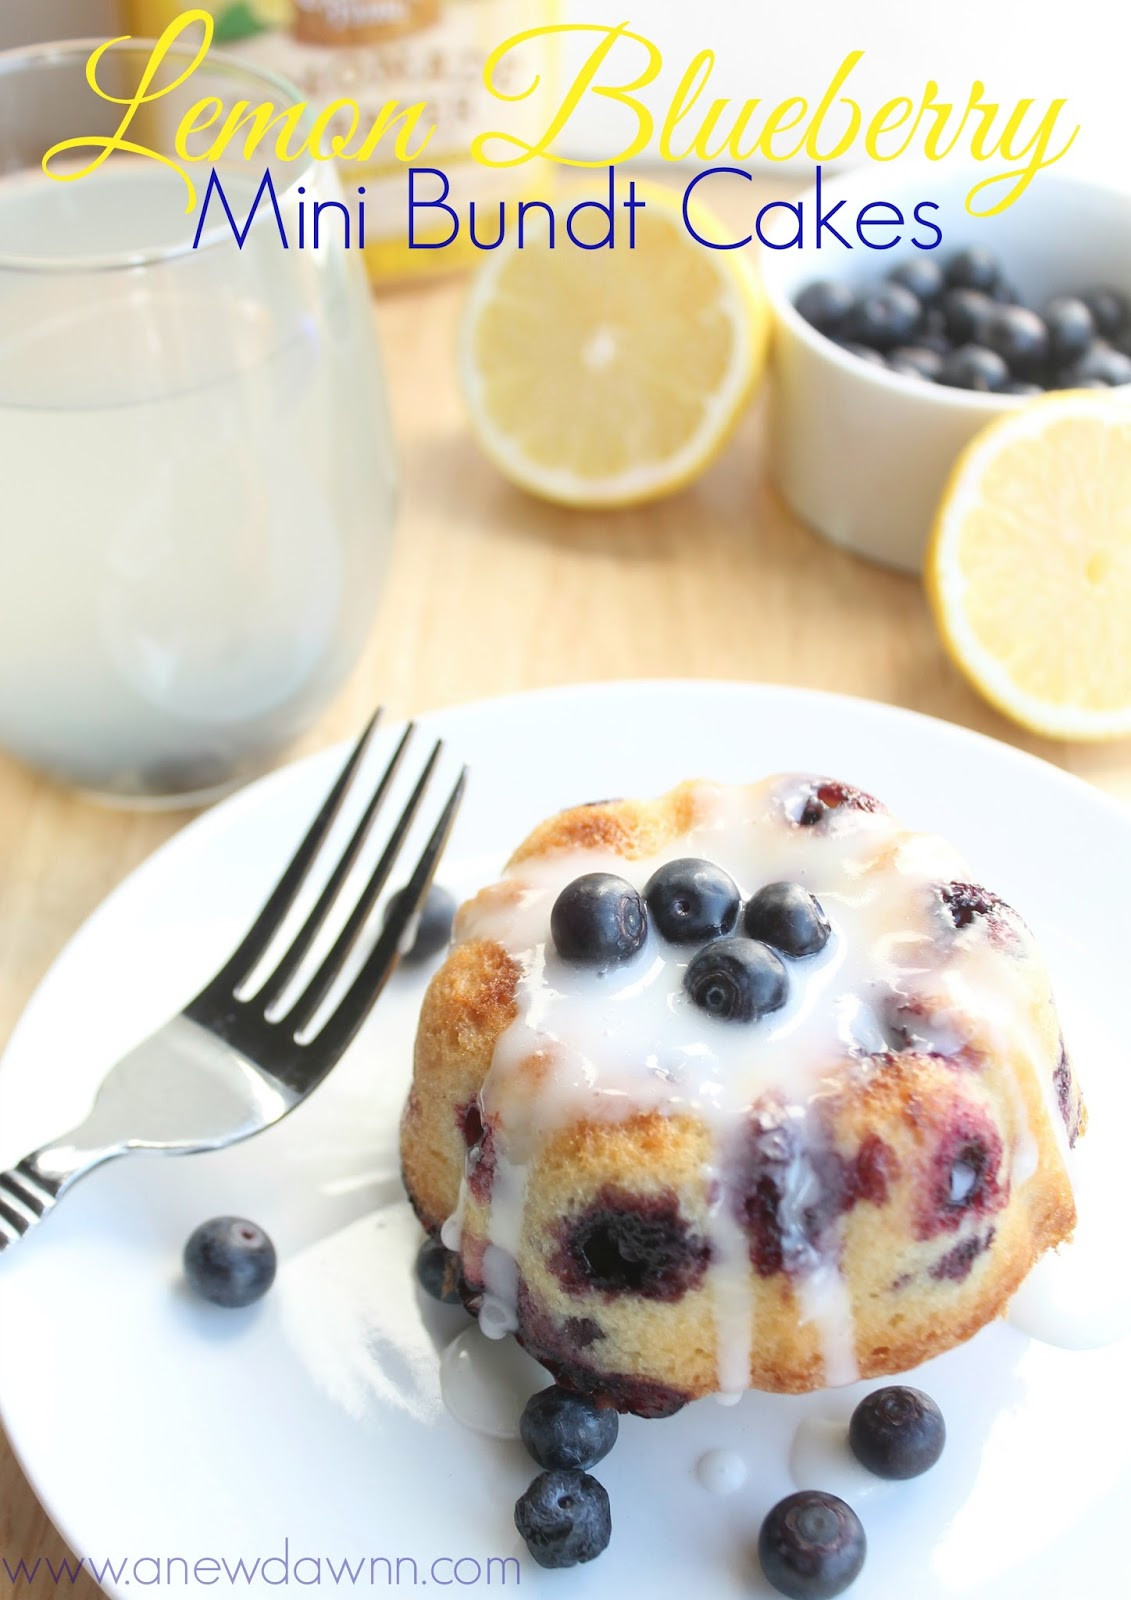 Think Spring With These Delicious Lemon Blueberry Mini Bundt Cakes